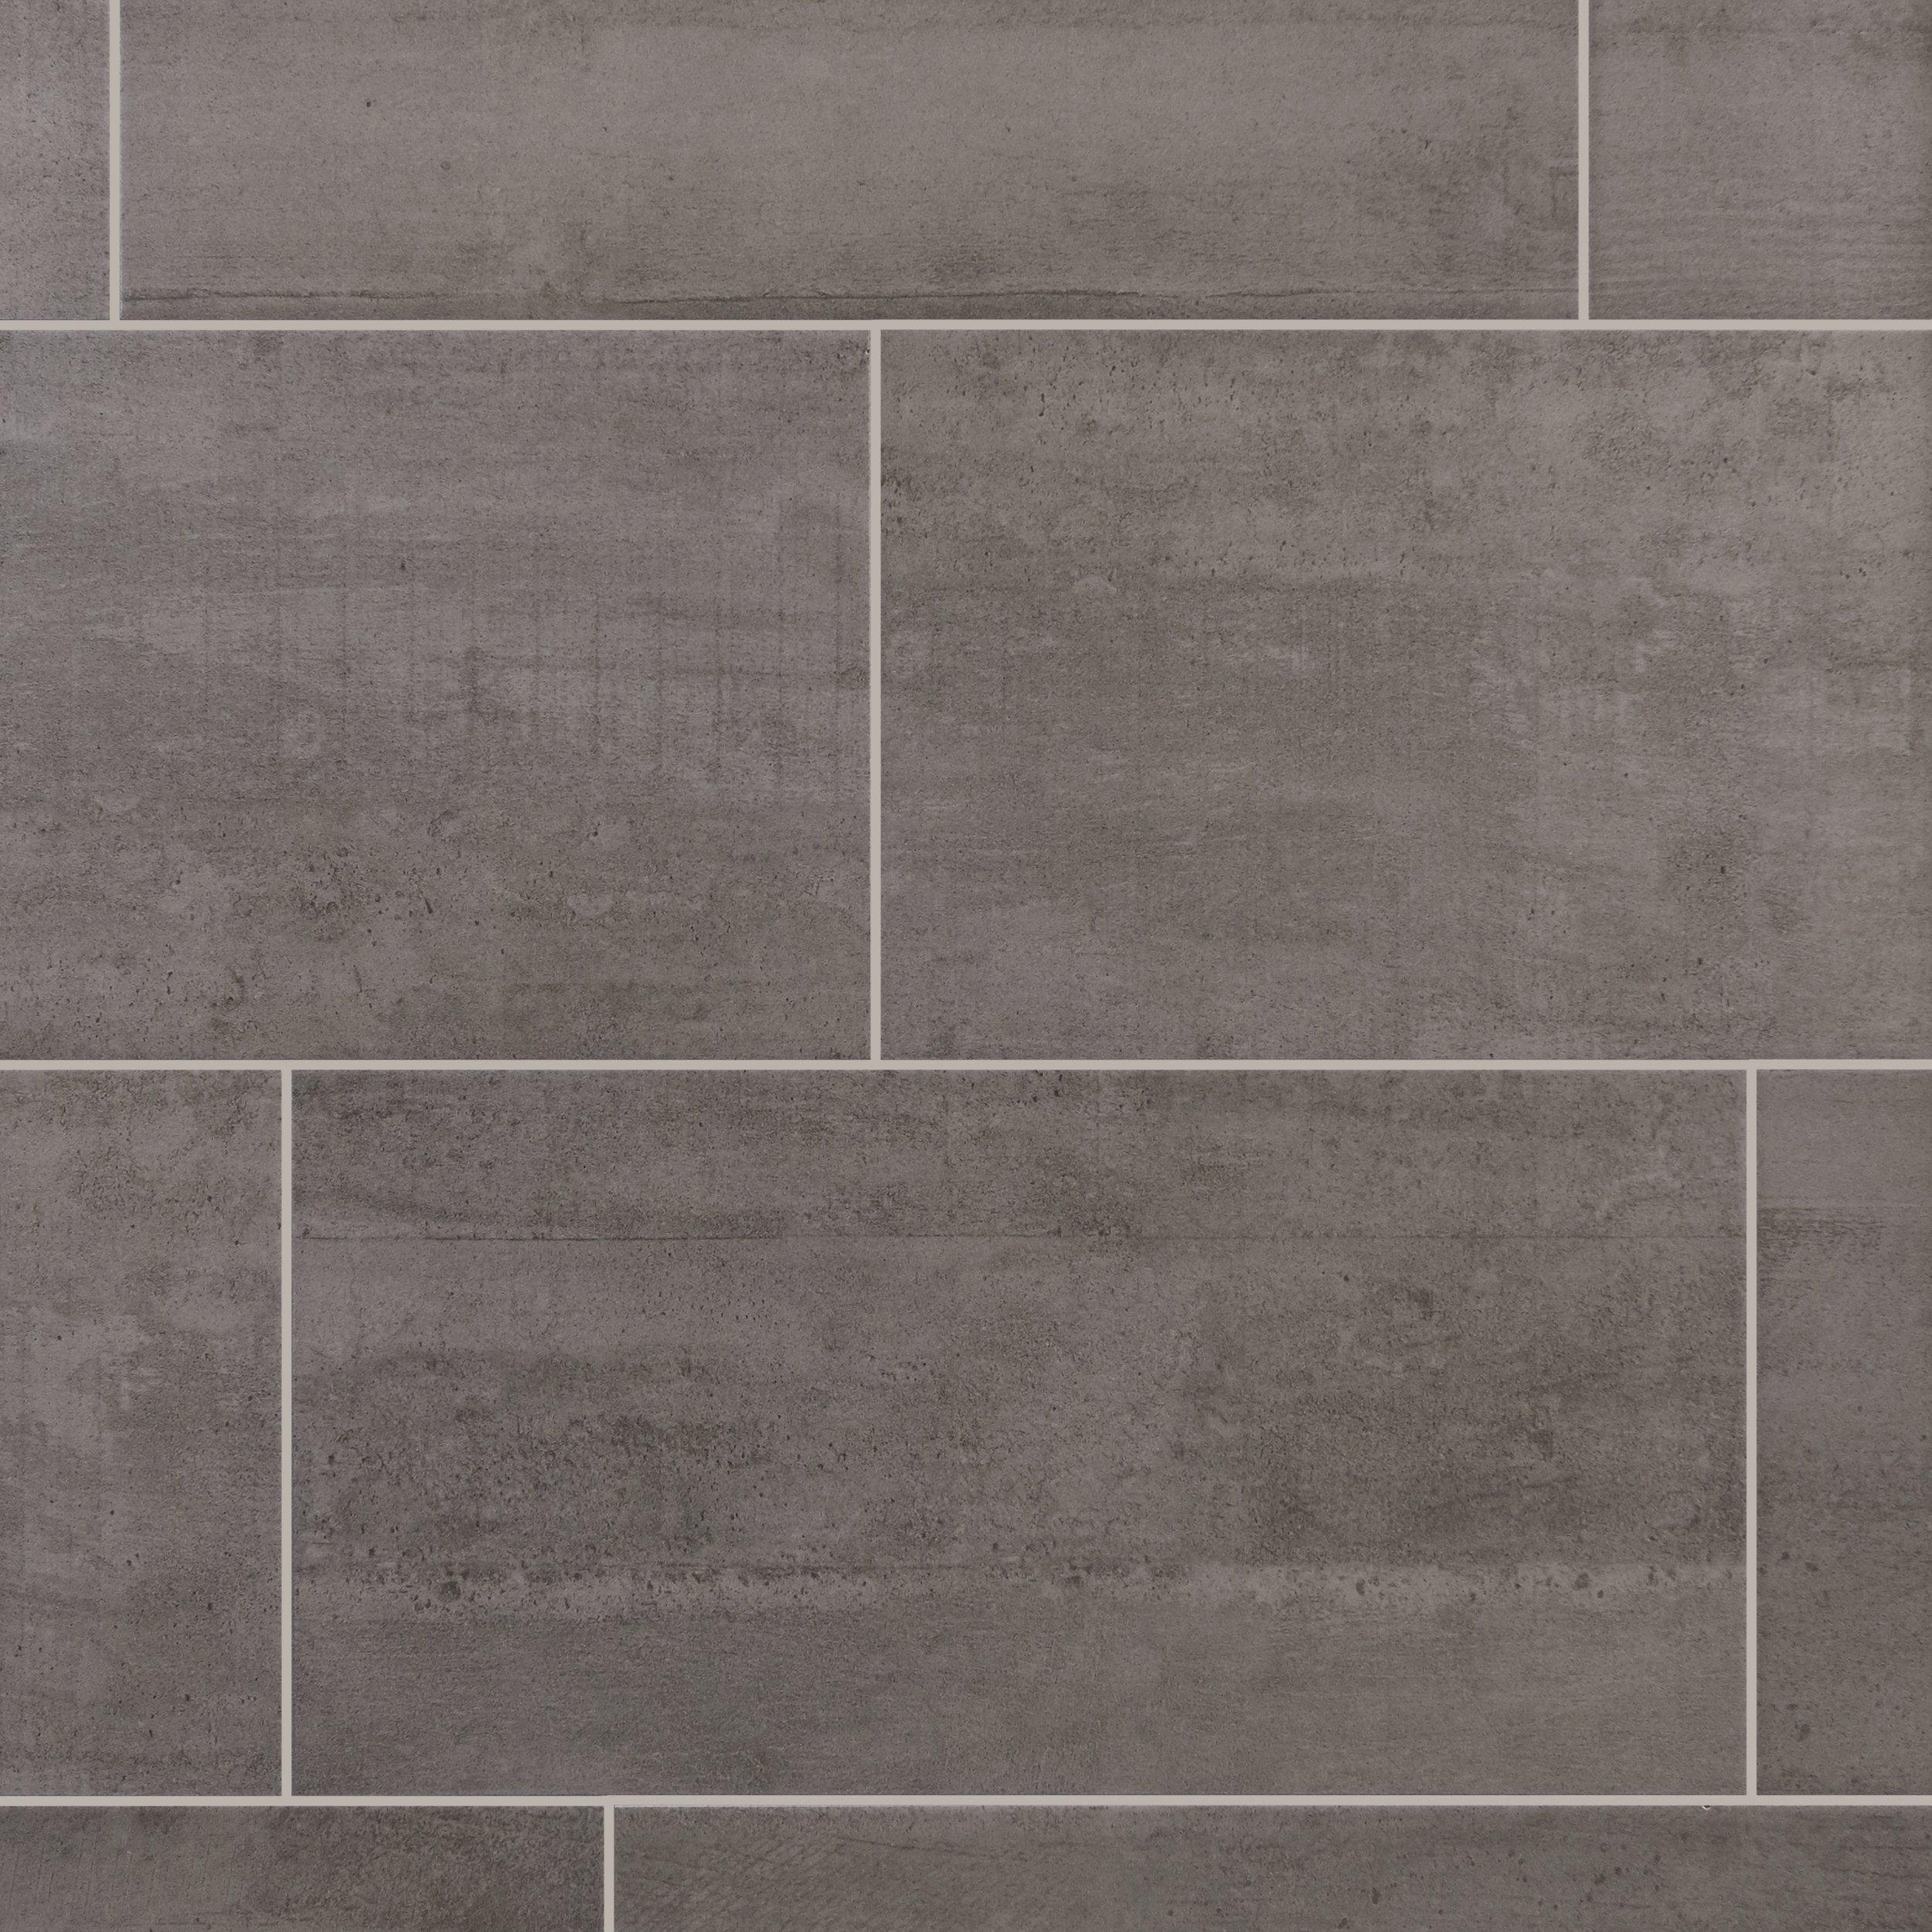 Tips for choosing ceramic tile flooring goodworksfurniture ceramic tile flooring concrete gray ceramic tile 12in x 24in 100136795 dailygadgetfo Gallery